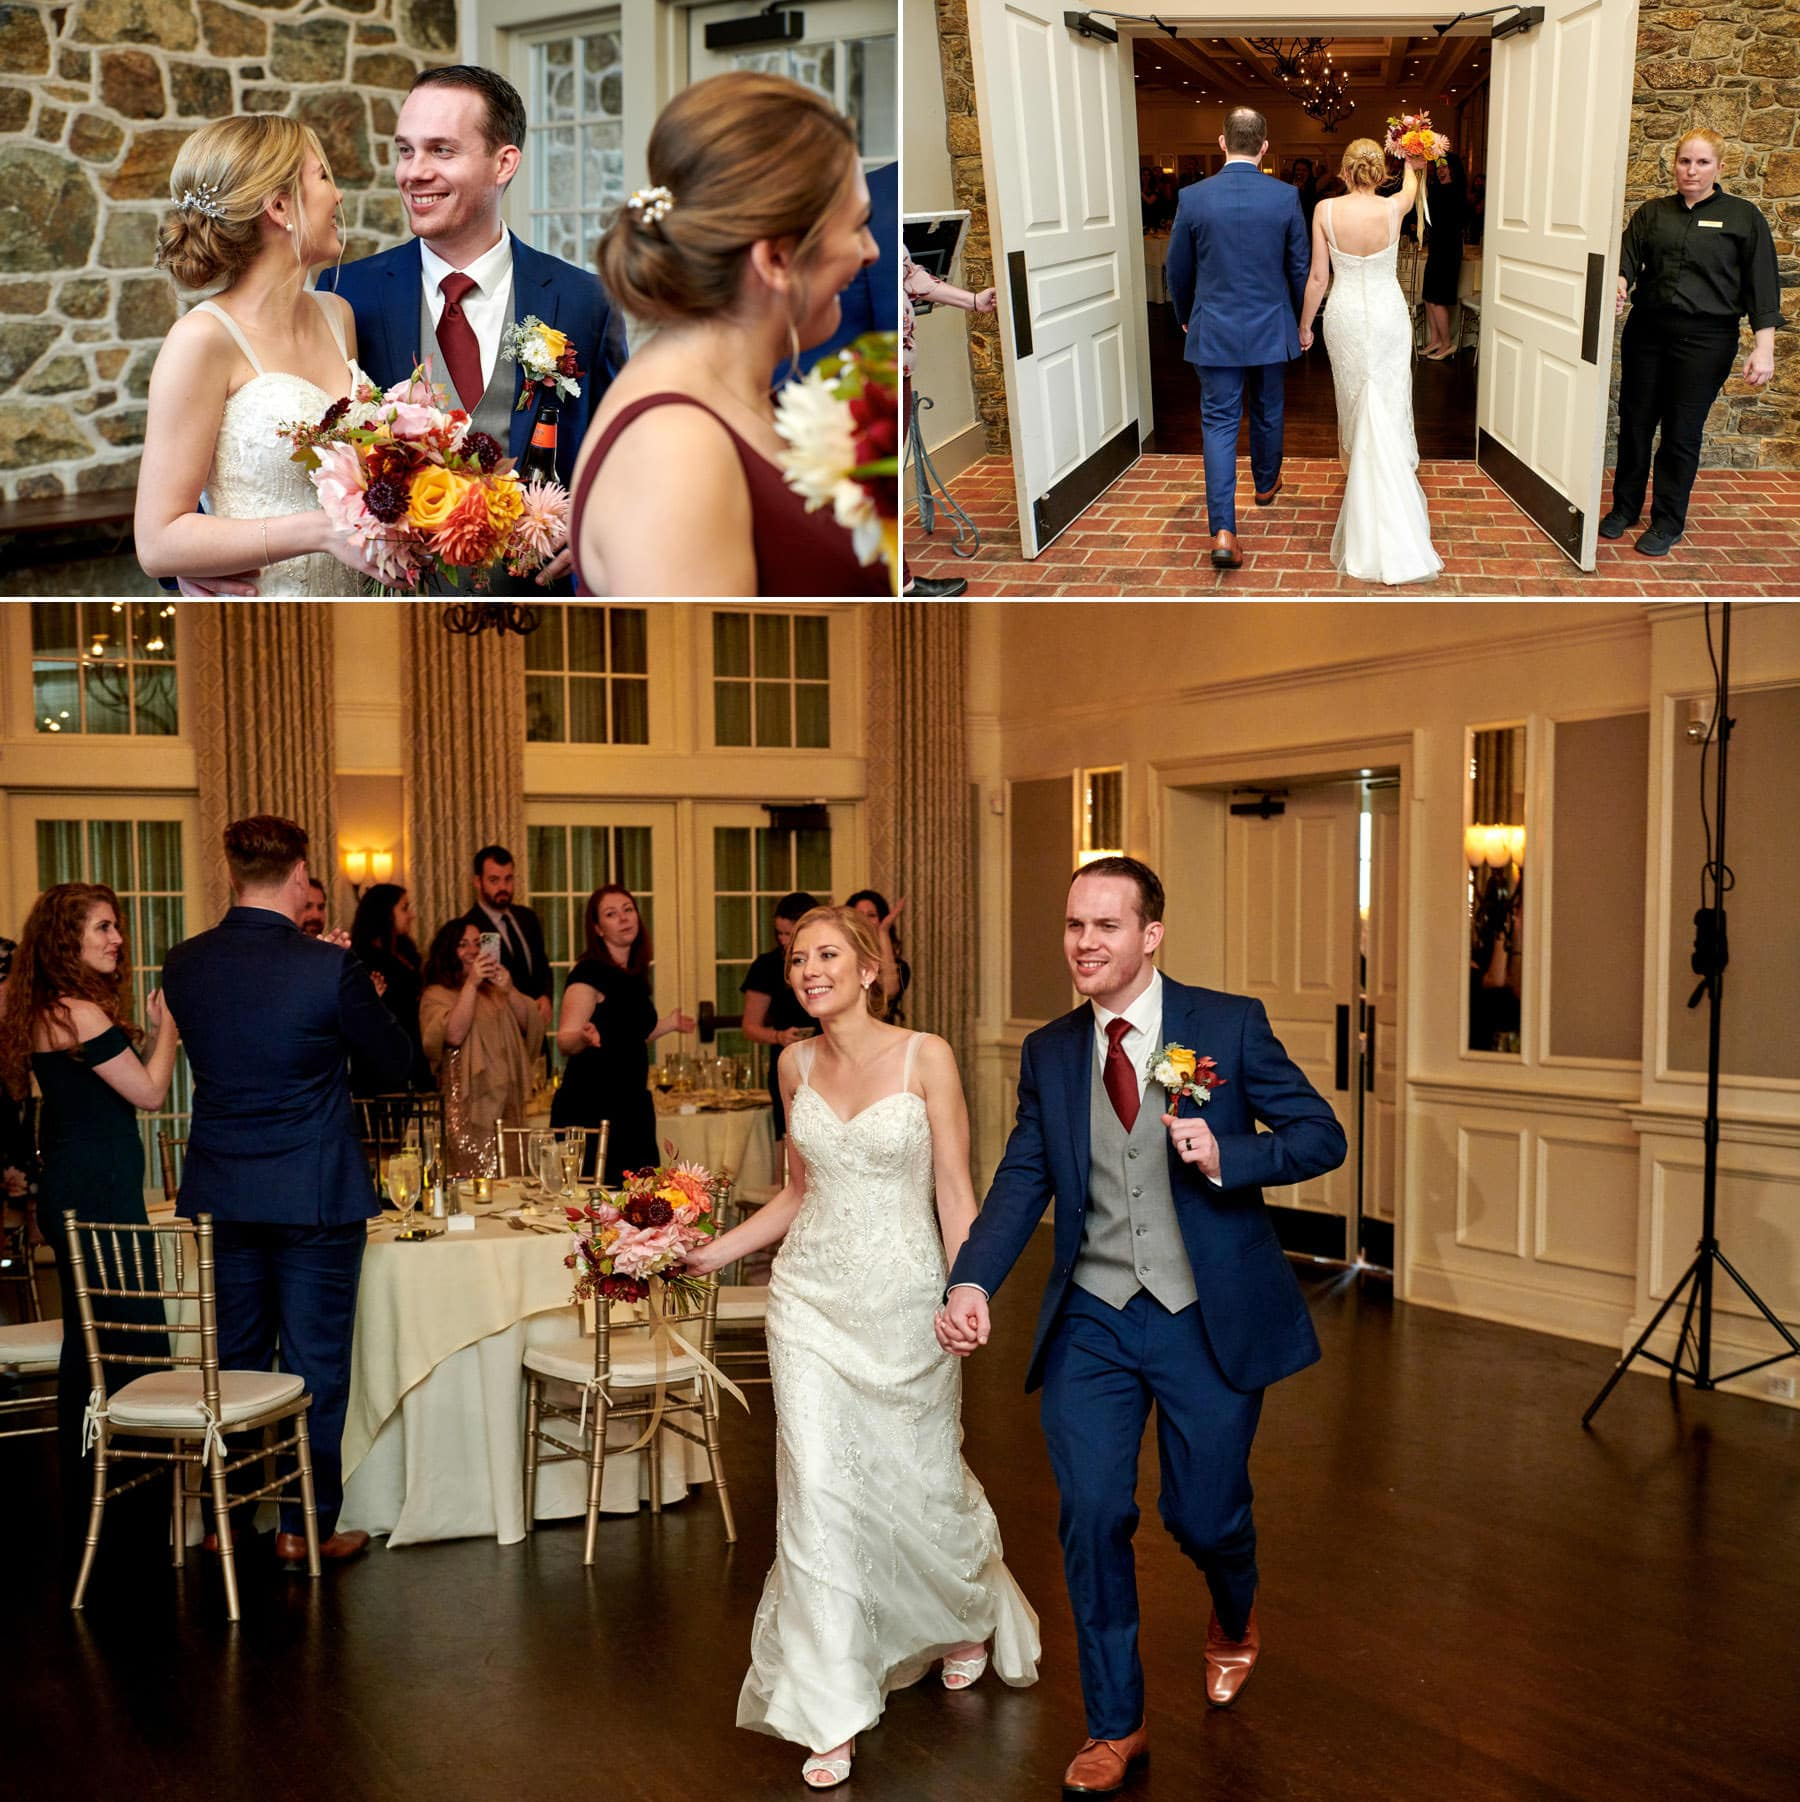 French Creek Golf Club wedding entrance photos